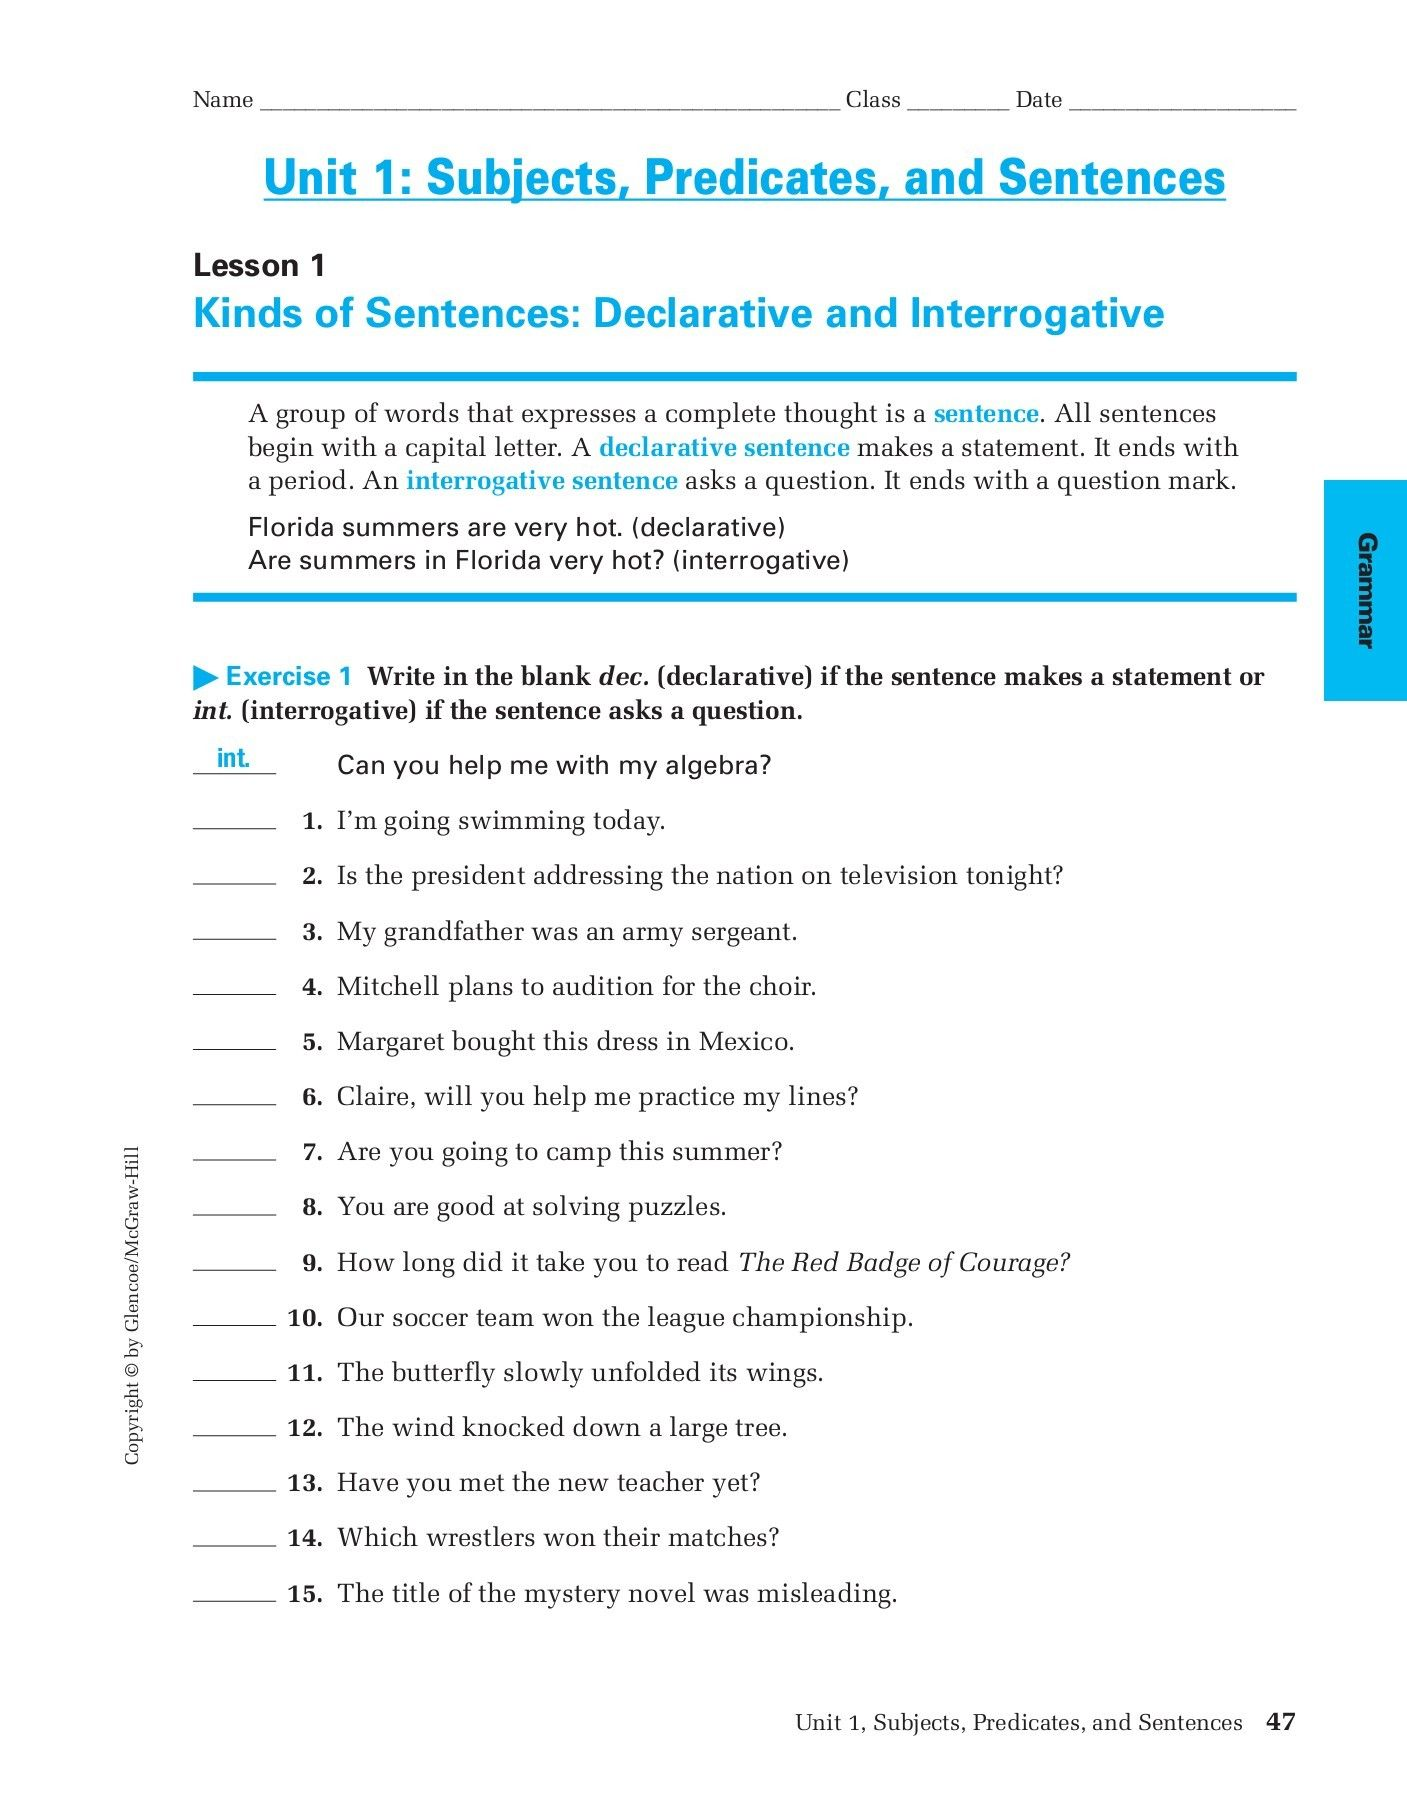 22 Diagramming Adjectives And Adverbs Worksheets Simbologia